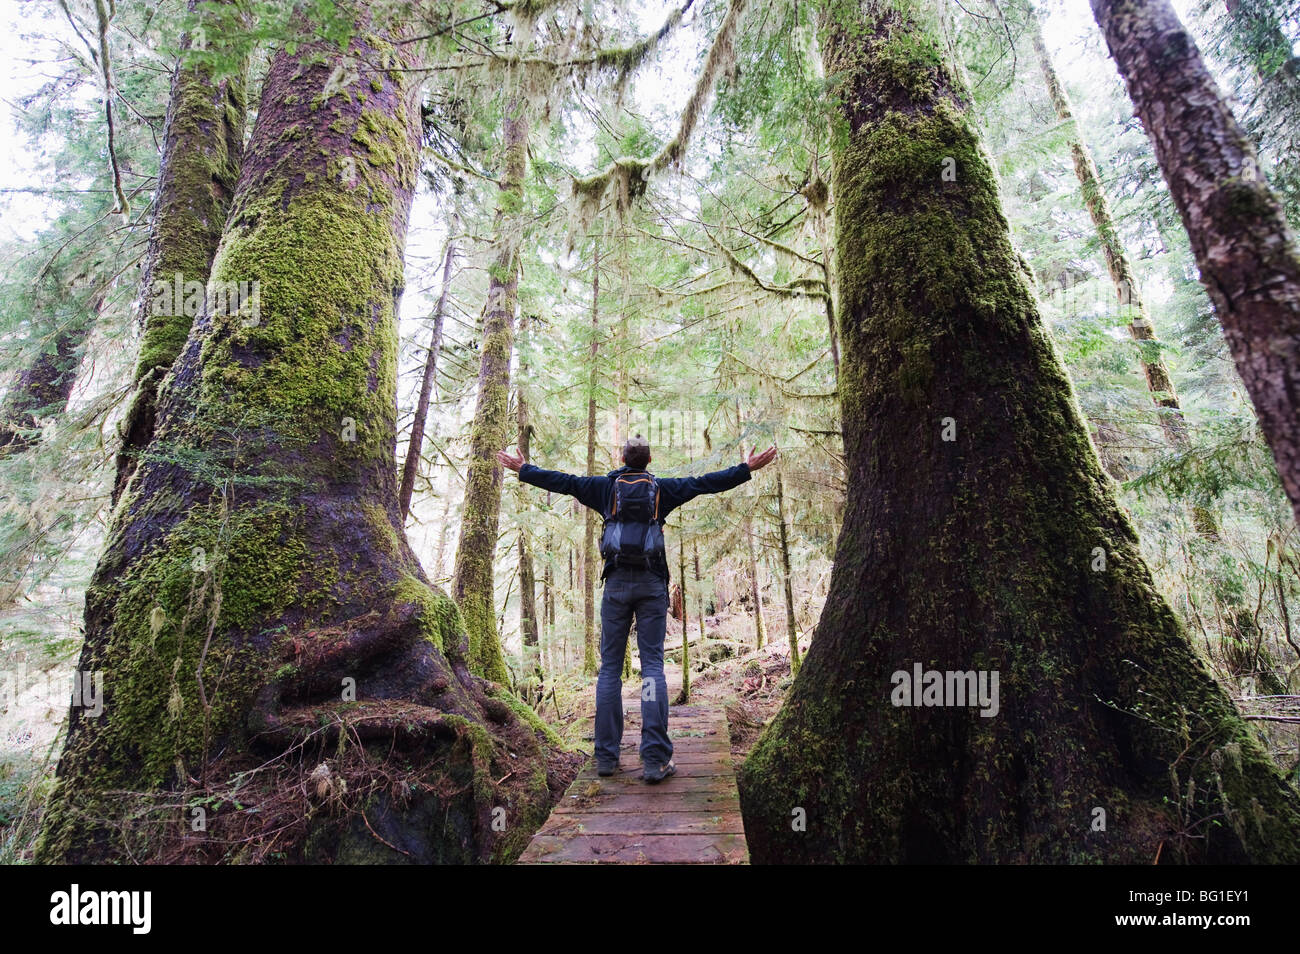 A hiker in the old growth forest at Carmanah Walbran Provincial Park, Vancouver Island, British Columbia, Canada, - Stock Image